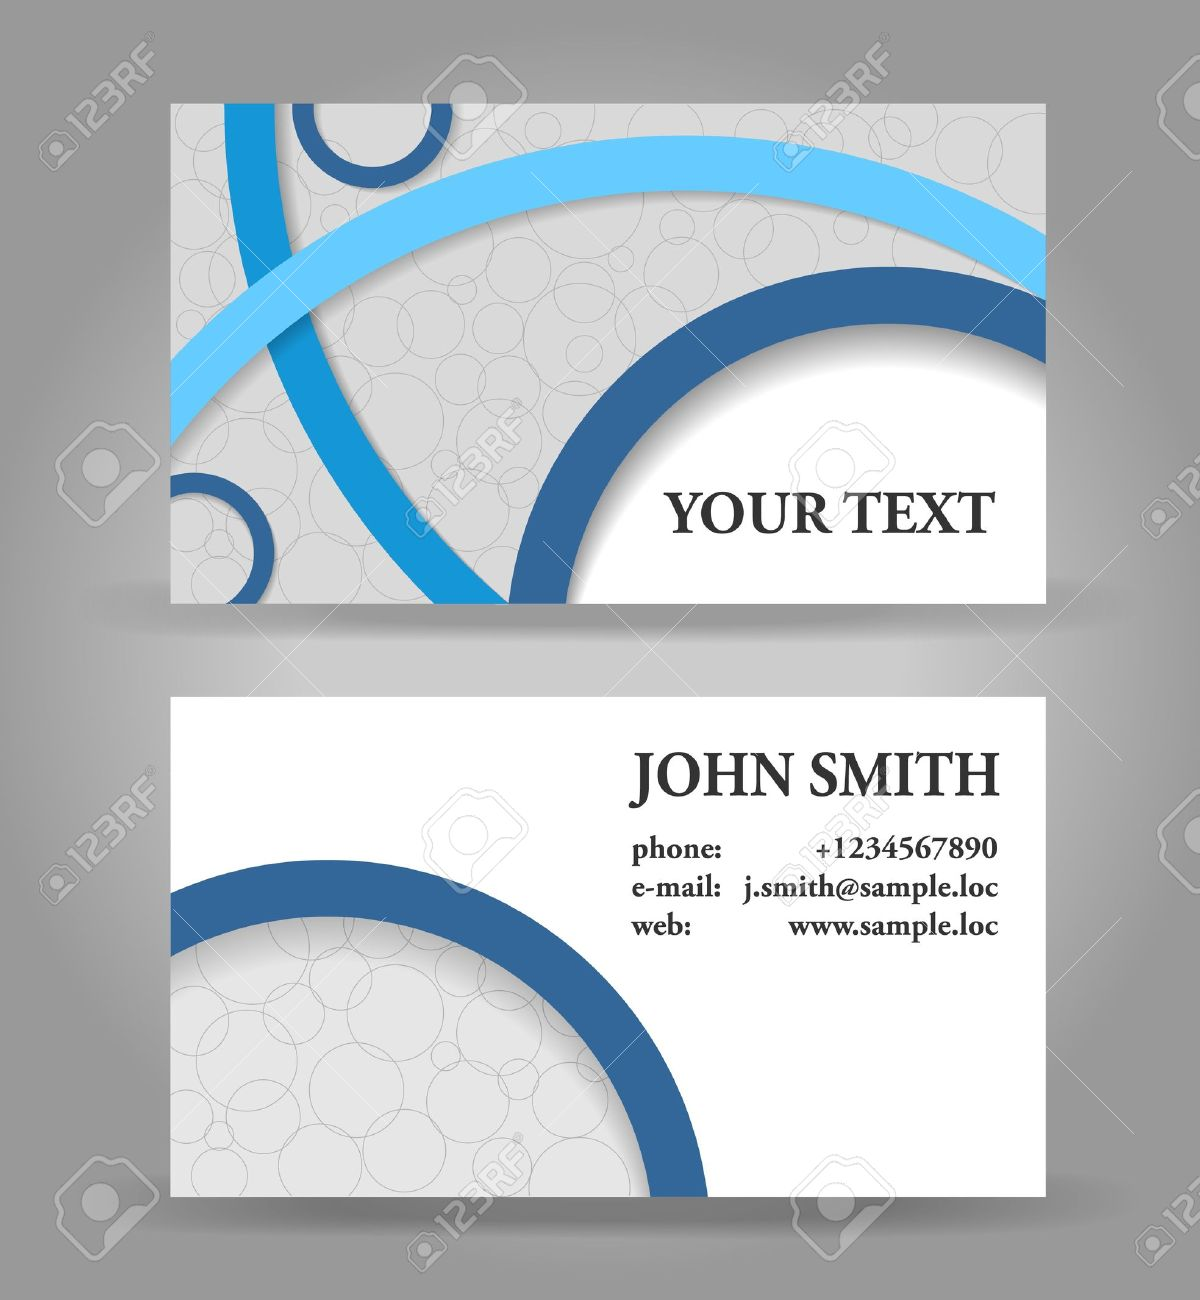 Blue and gray modern business card template royalty free cliparts blue and gray modern business card template stock vector 14585169 cheaphphosting Image collections